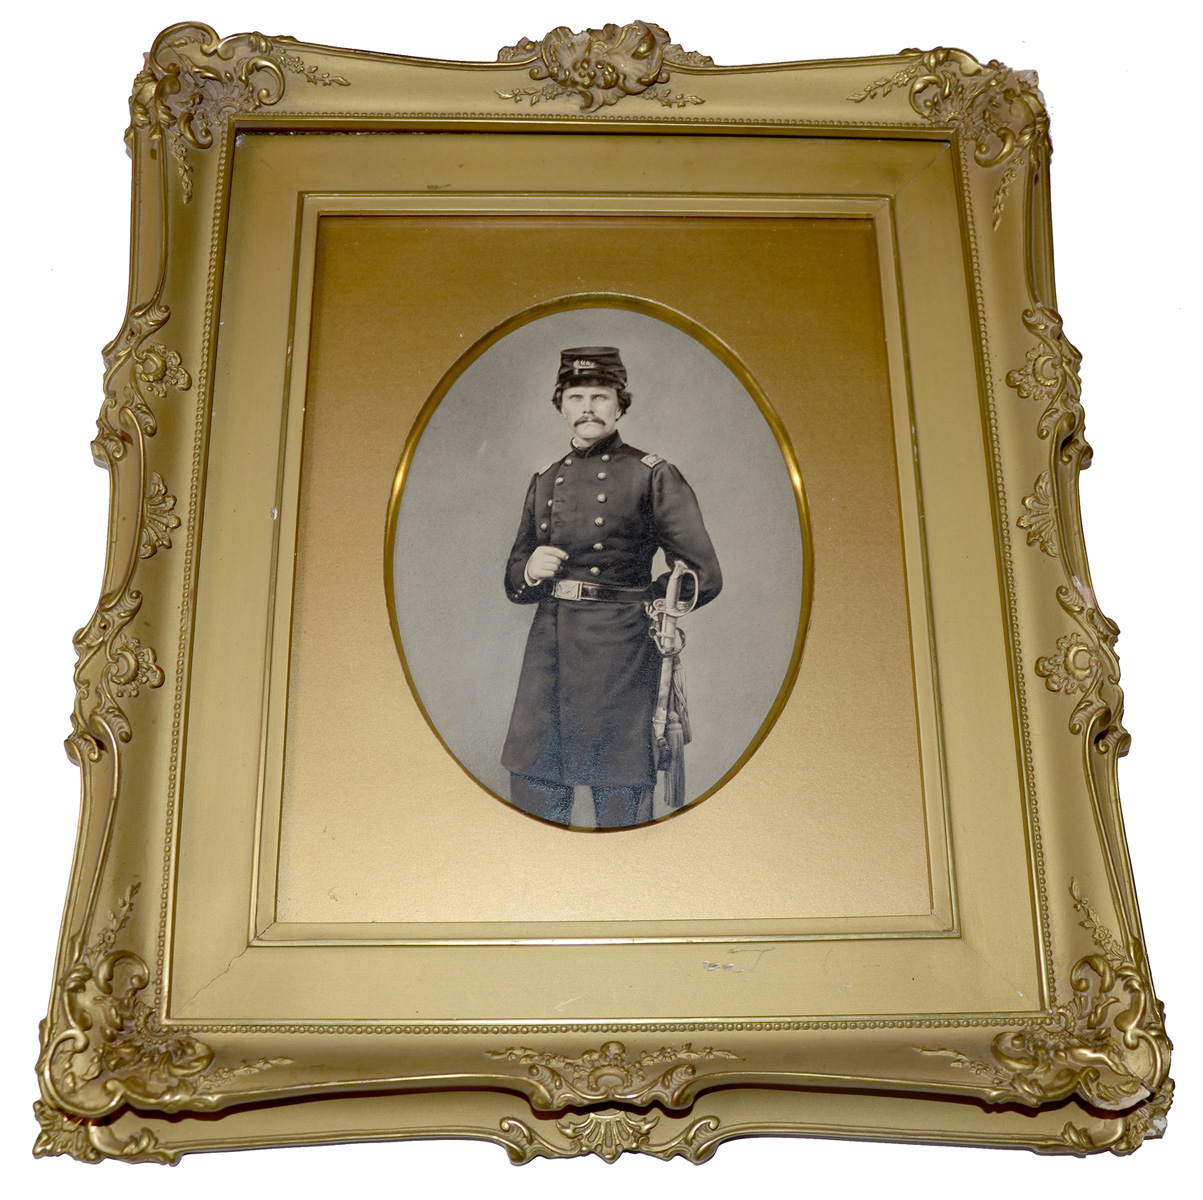 VERY HANDSOME FRAMED PICTURE OF MAJOR GORDON TANNER OF THE 22ND INDIANA INFANTRY KILLED IN DECEMBER OF 1861